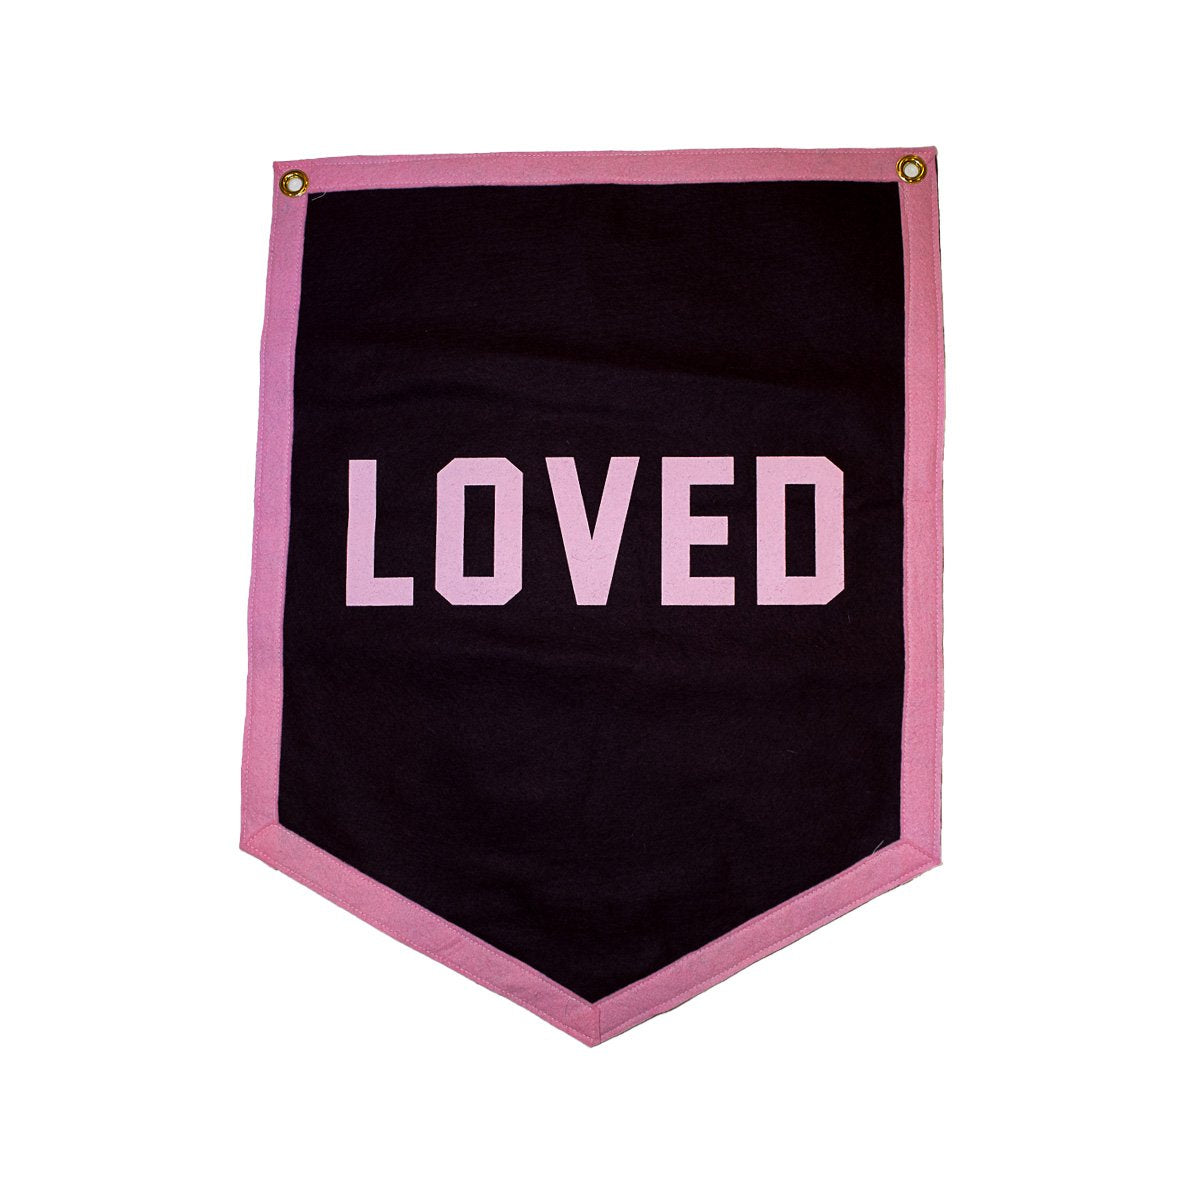 Loved Camp Flag - Maroon // Pink Trim